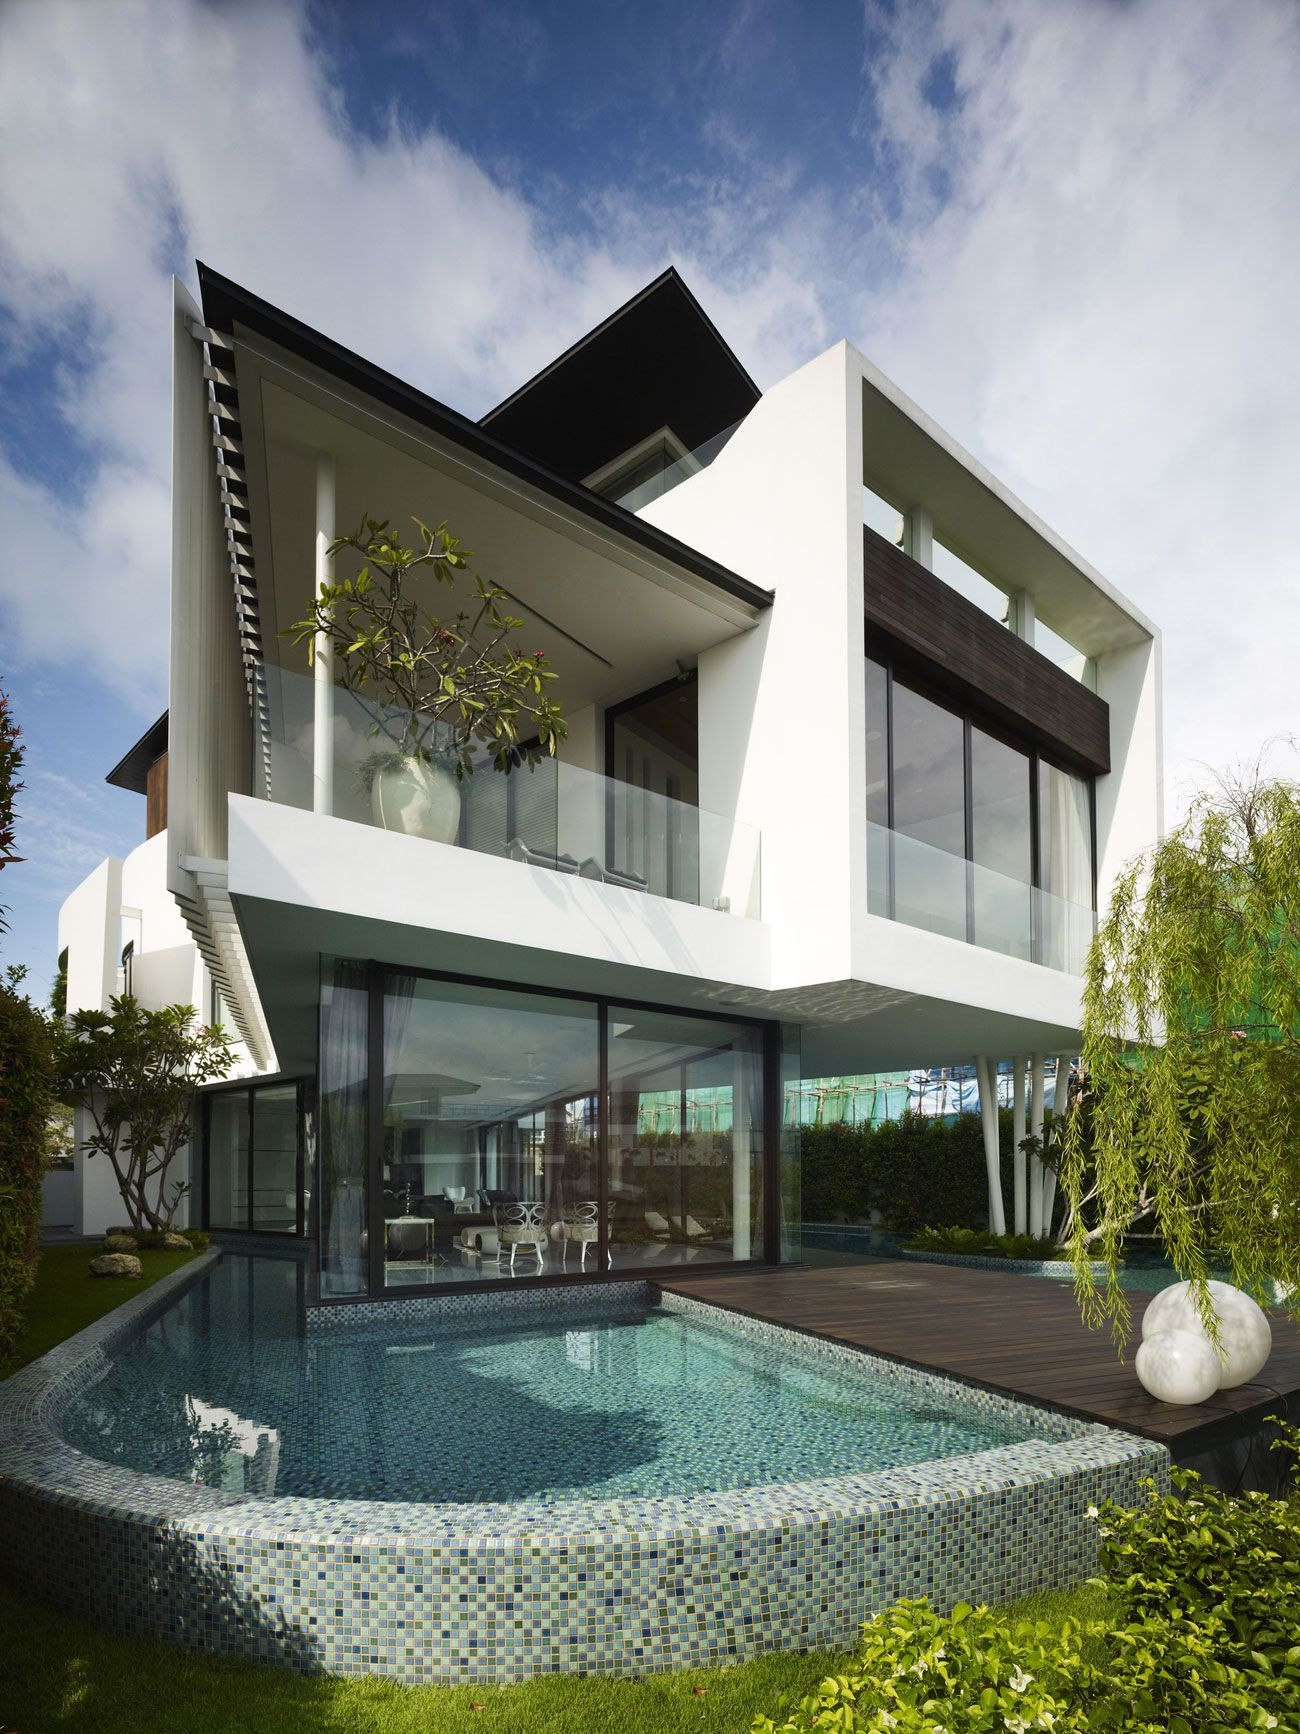 Cove grove sentosa by aamer architects the site is narrow and long with a small luxury mansionsluxury homesluxurious